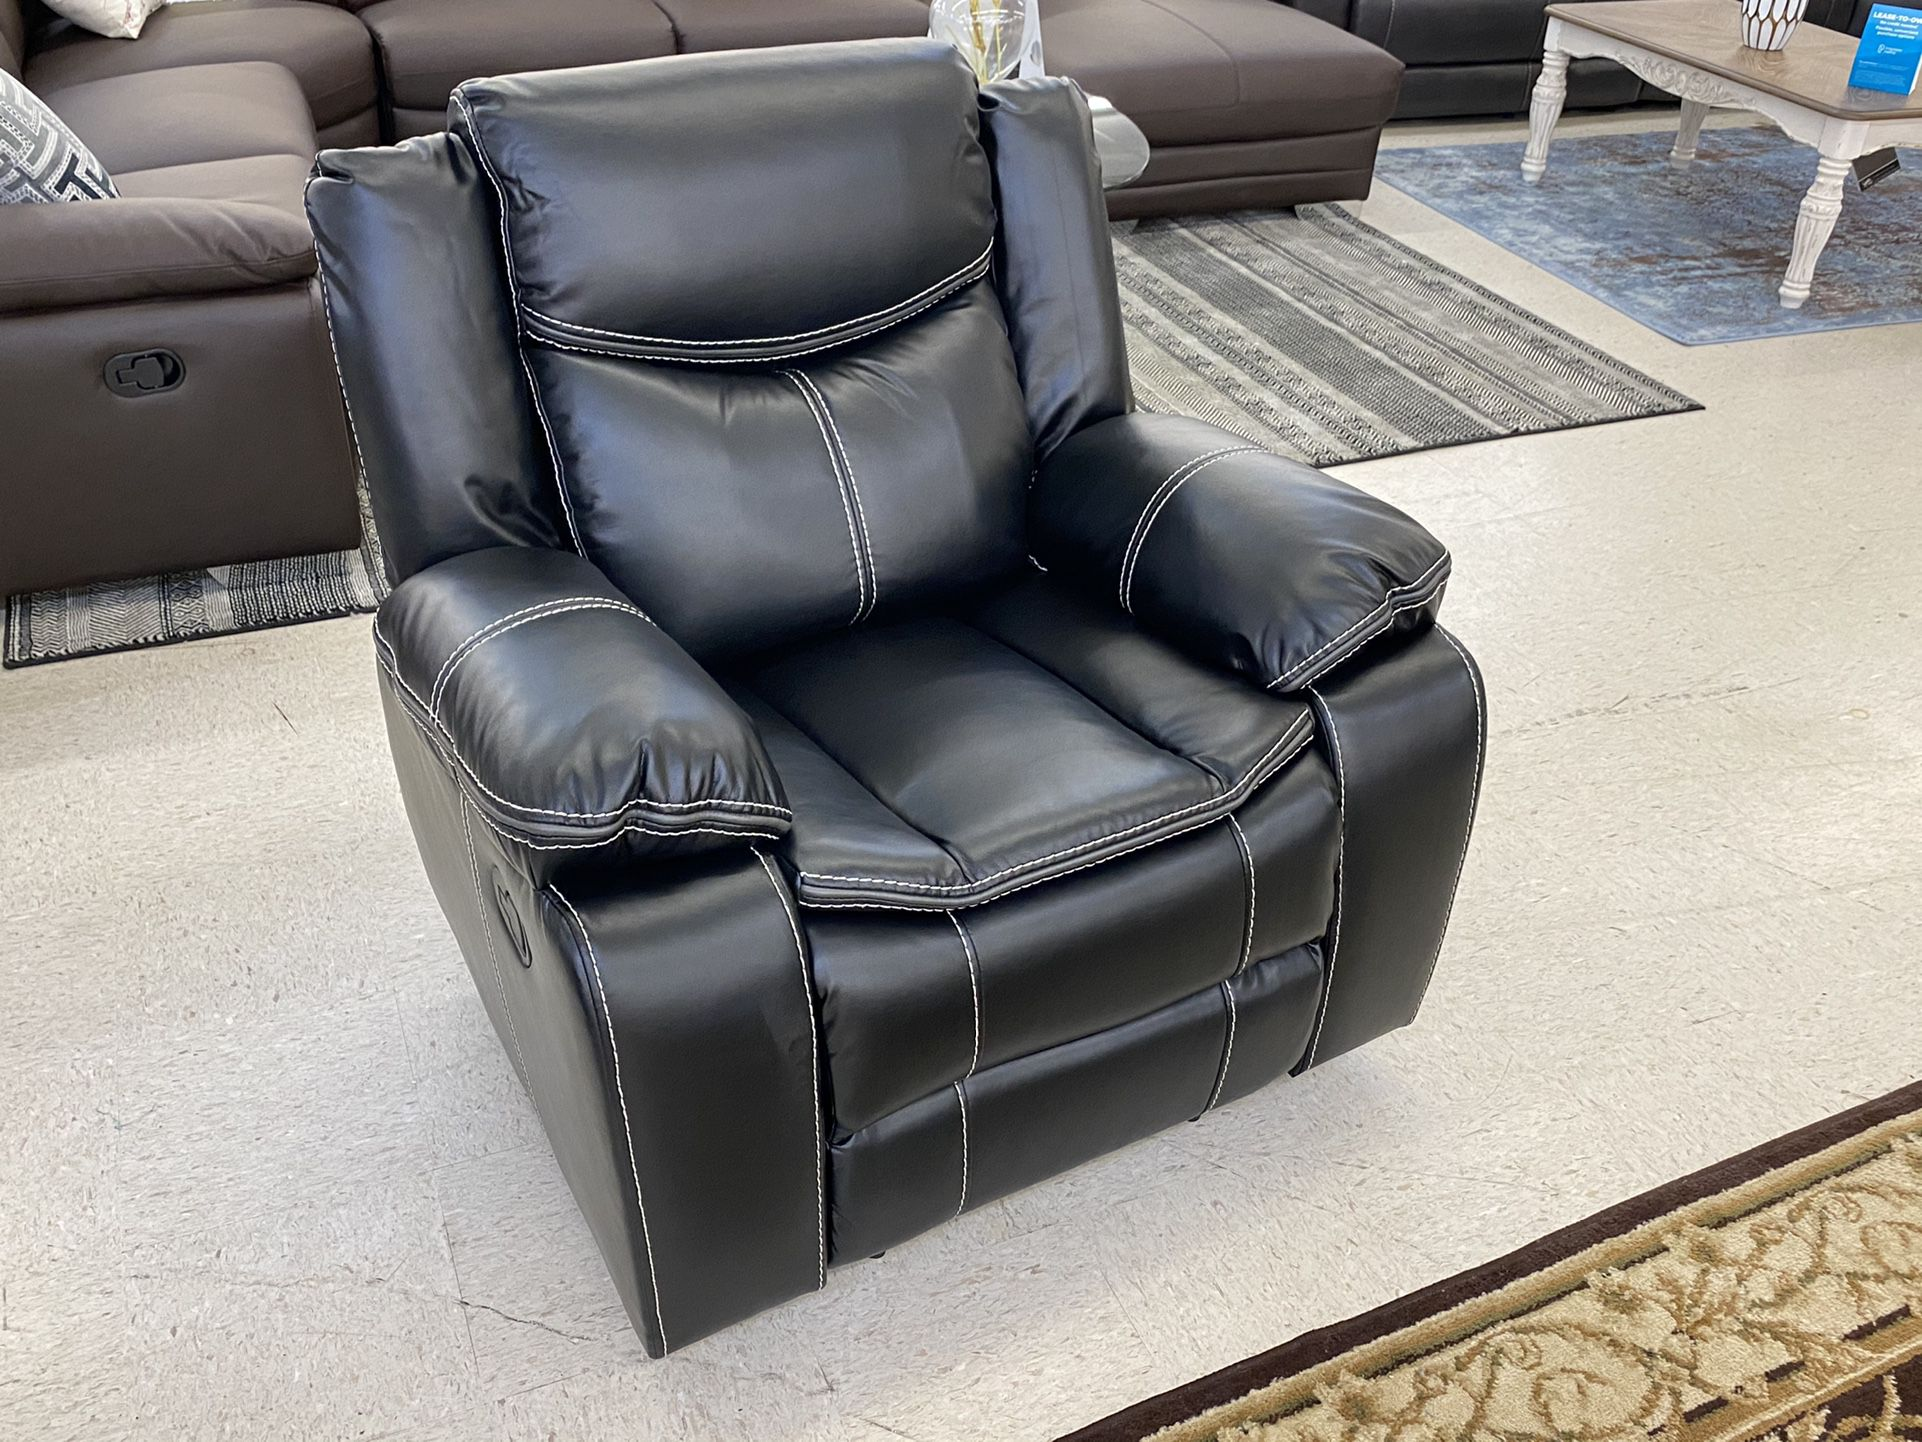 Brand New Black Leather Manual Reclining Sofa Set . $39 Down Payment Foe No Credit Check Financing . We Do Same Day Delivery